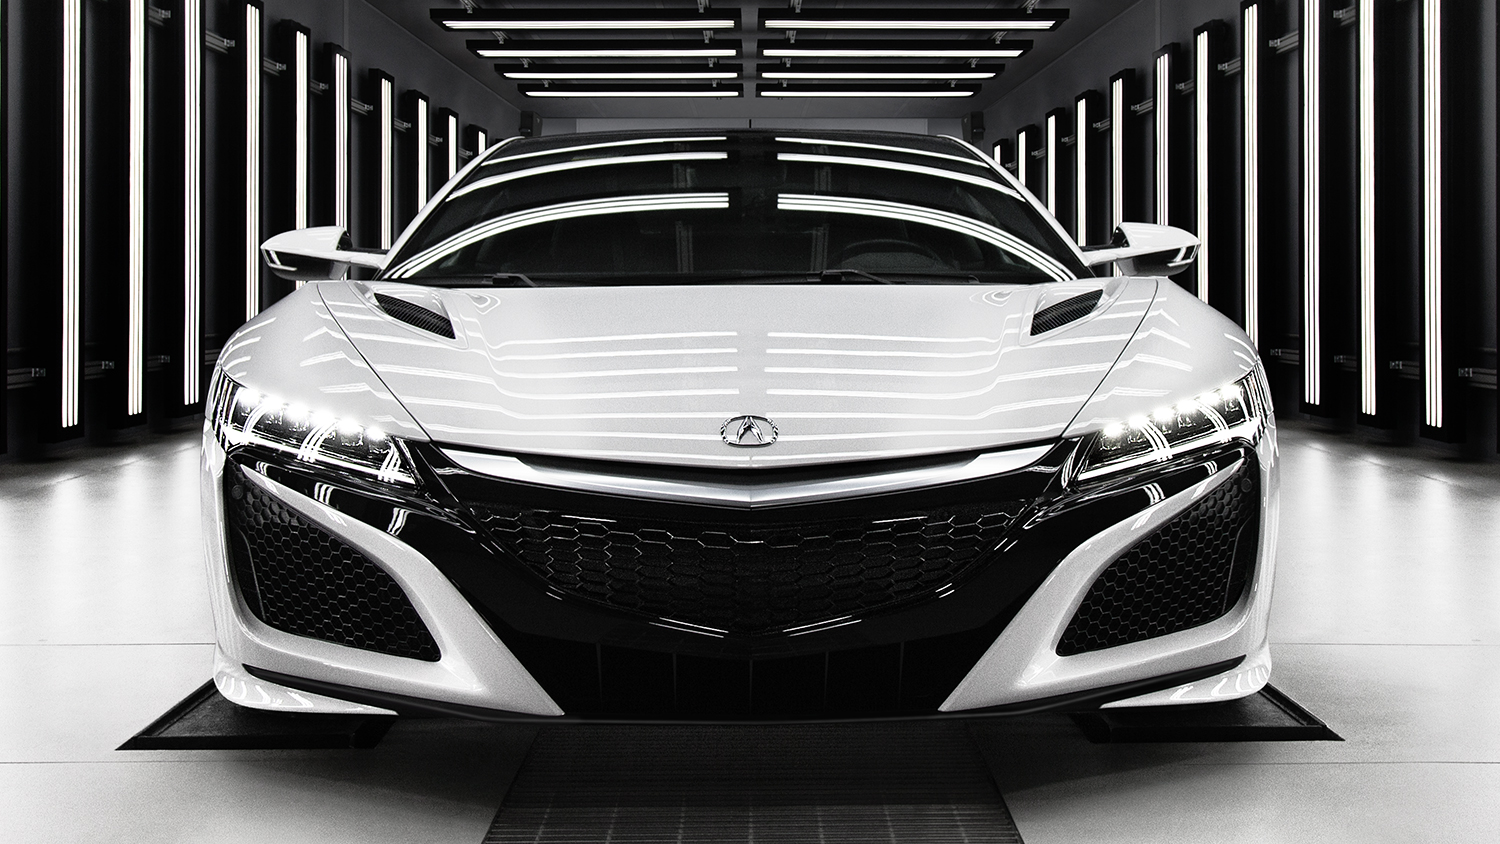 Every 2017 Acura Nsx Is Hand Built In America